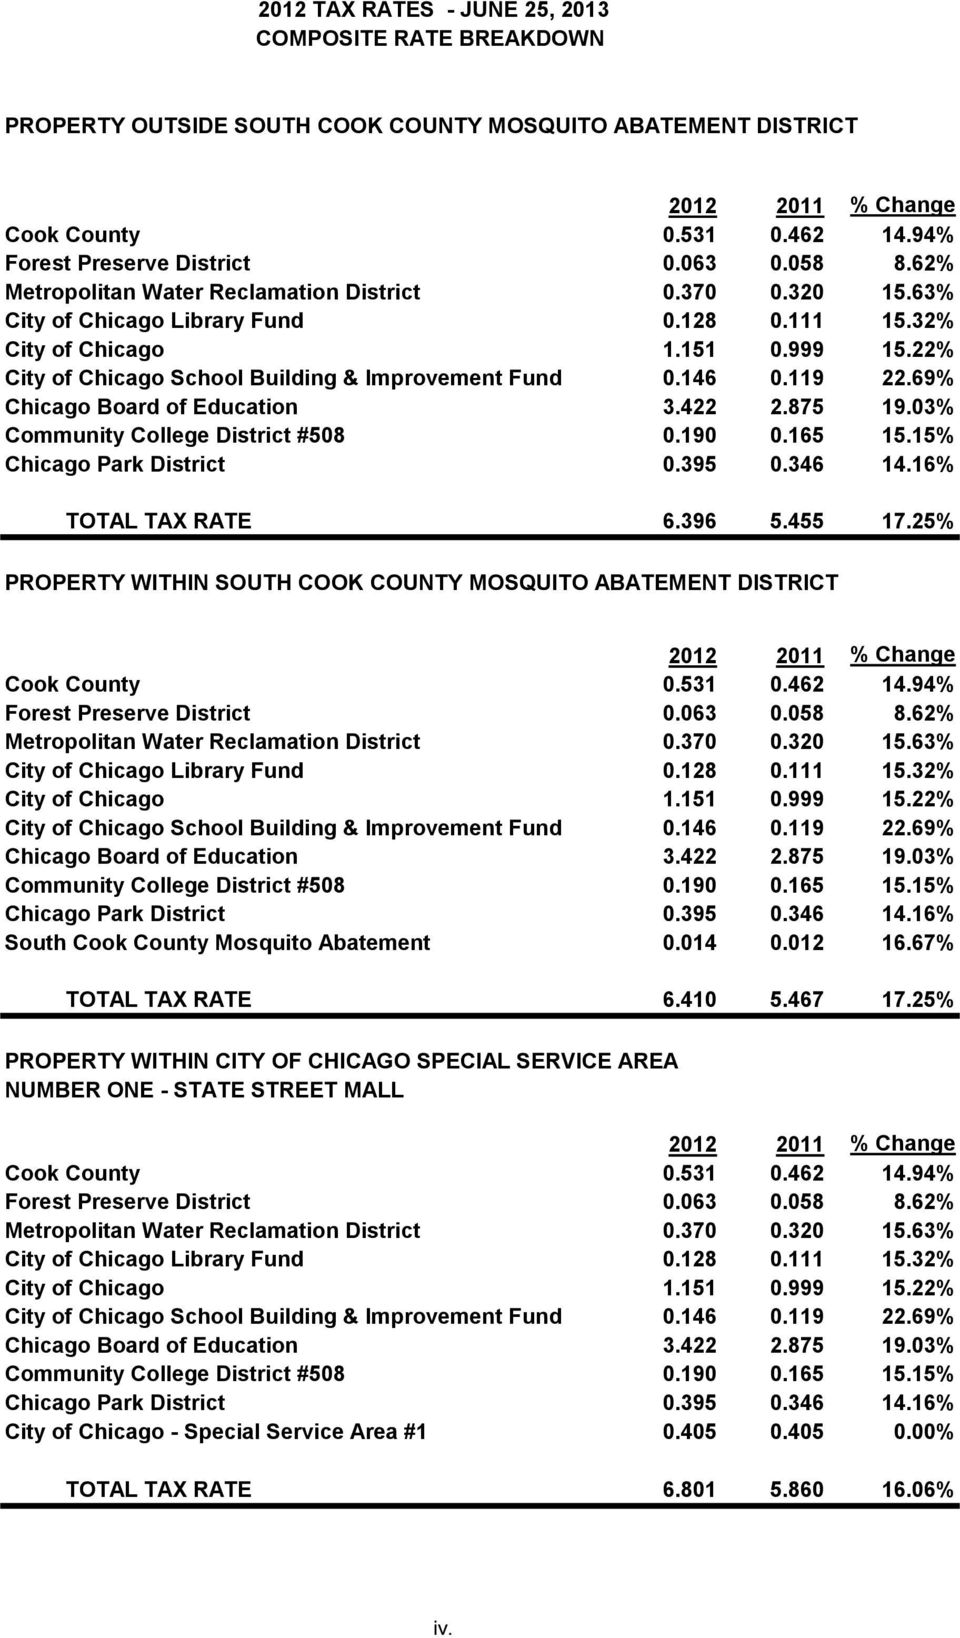 146 0.119 22.69% Chicago Board of Education 3.422 2.875 19.03% Community College District #508 0.190 0.165 15.15% Chicago Park District 0.395 0.346 14.16% TOTAL TAX RATE 6.396 5.455 17.